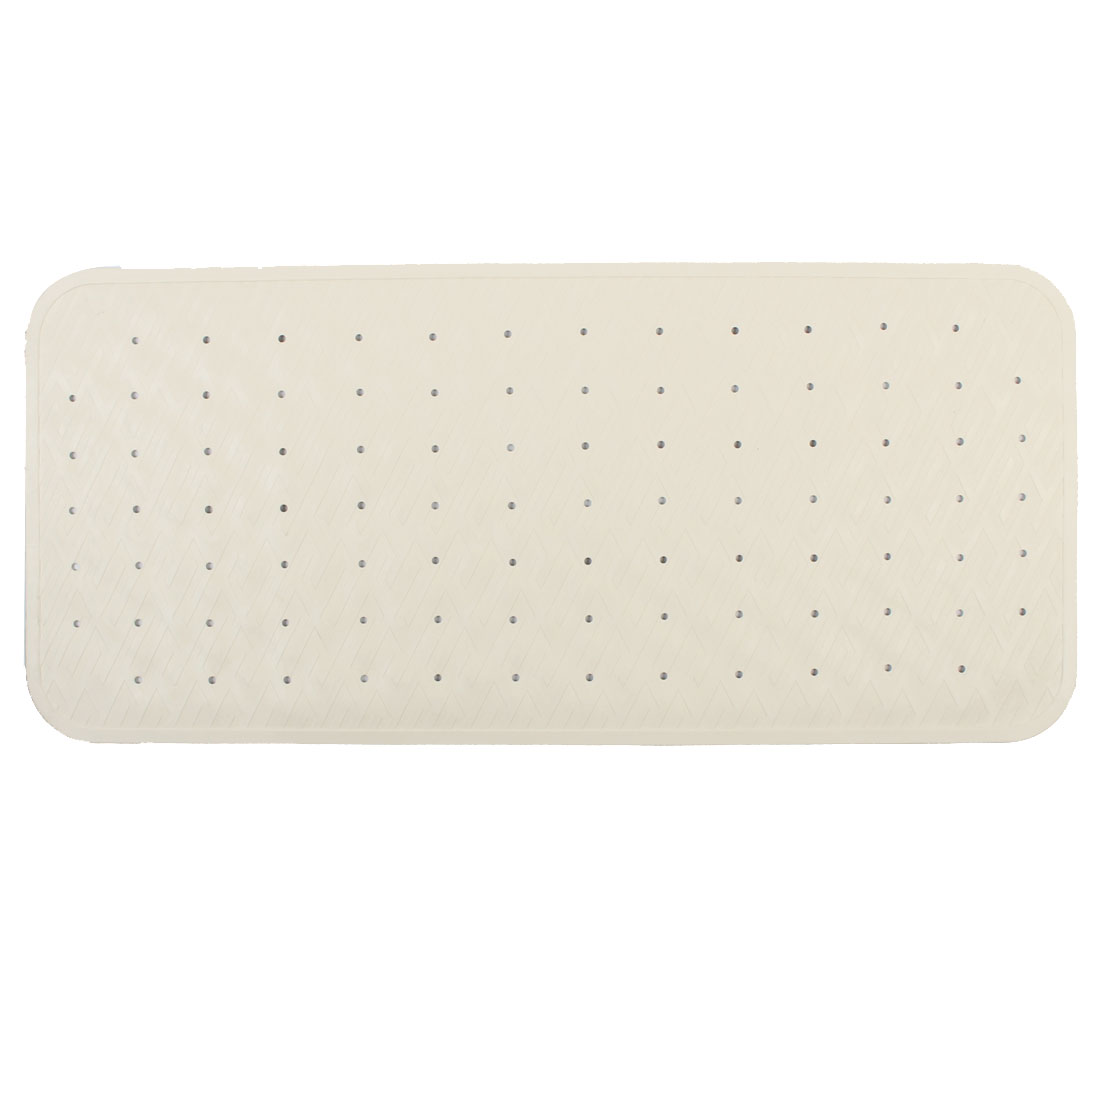 Hotel Bathroom Bathtub Rubber Non Slip Suction Bath Mat Beige 35cm x 76cm